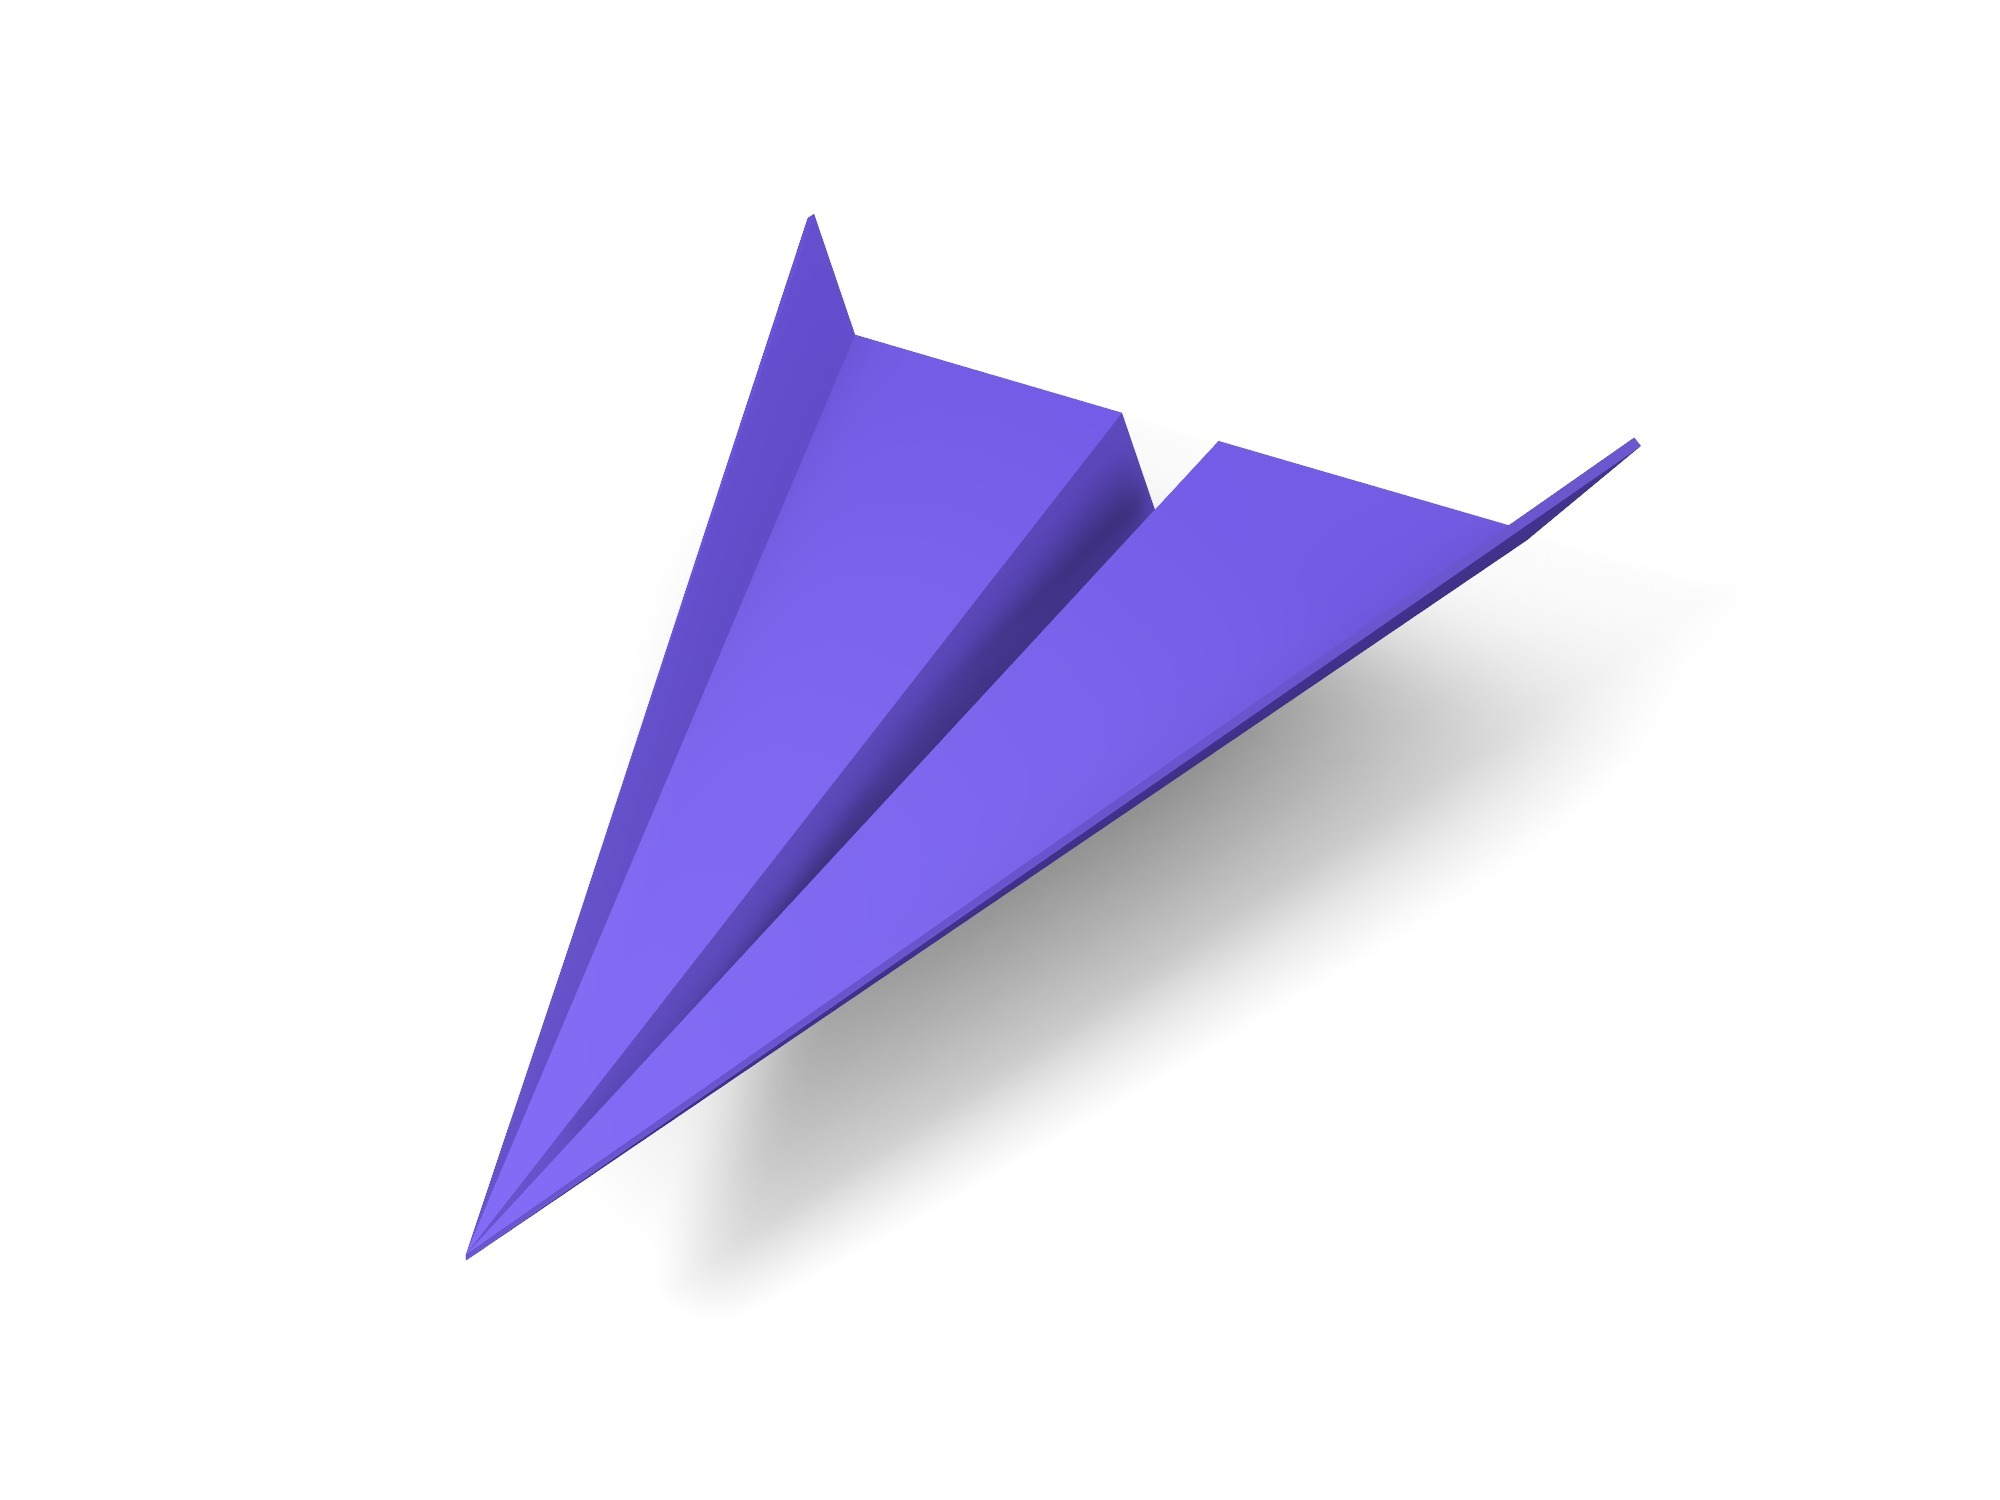 Paper plane with unfolded wings - 3D design by Vectary assets Aug 20, 2018